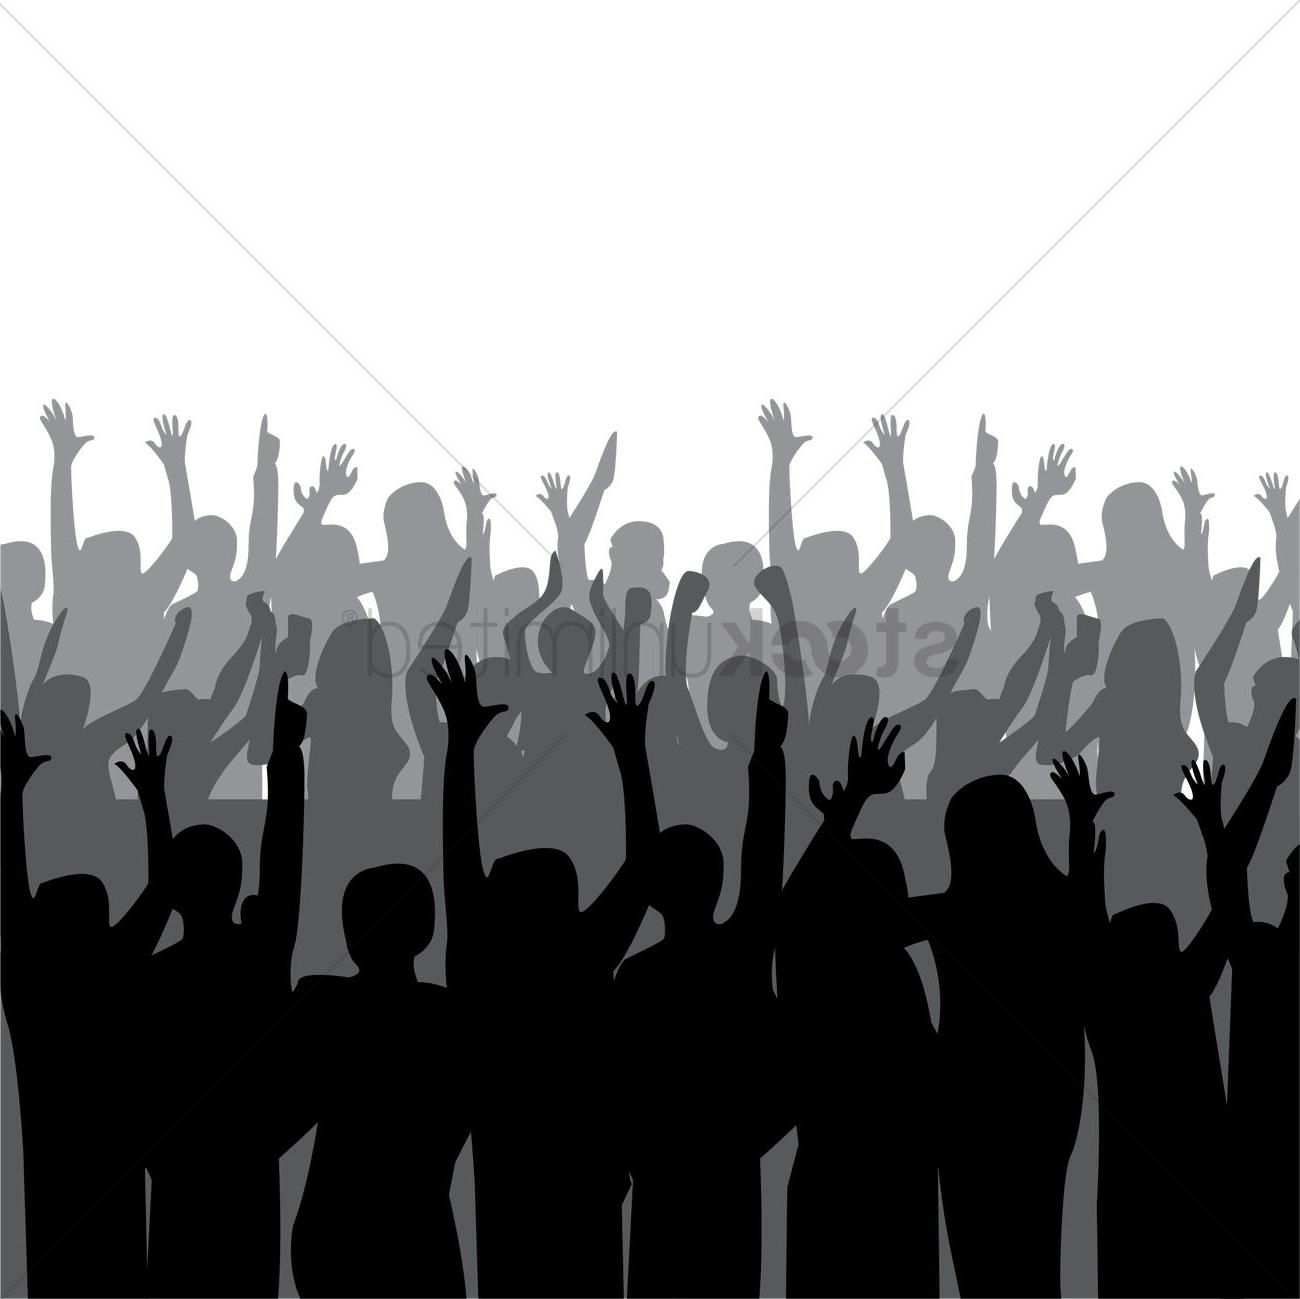 HD Crowd Silhouette Png Vector Images » Free Vector Art, Images.